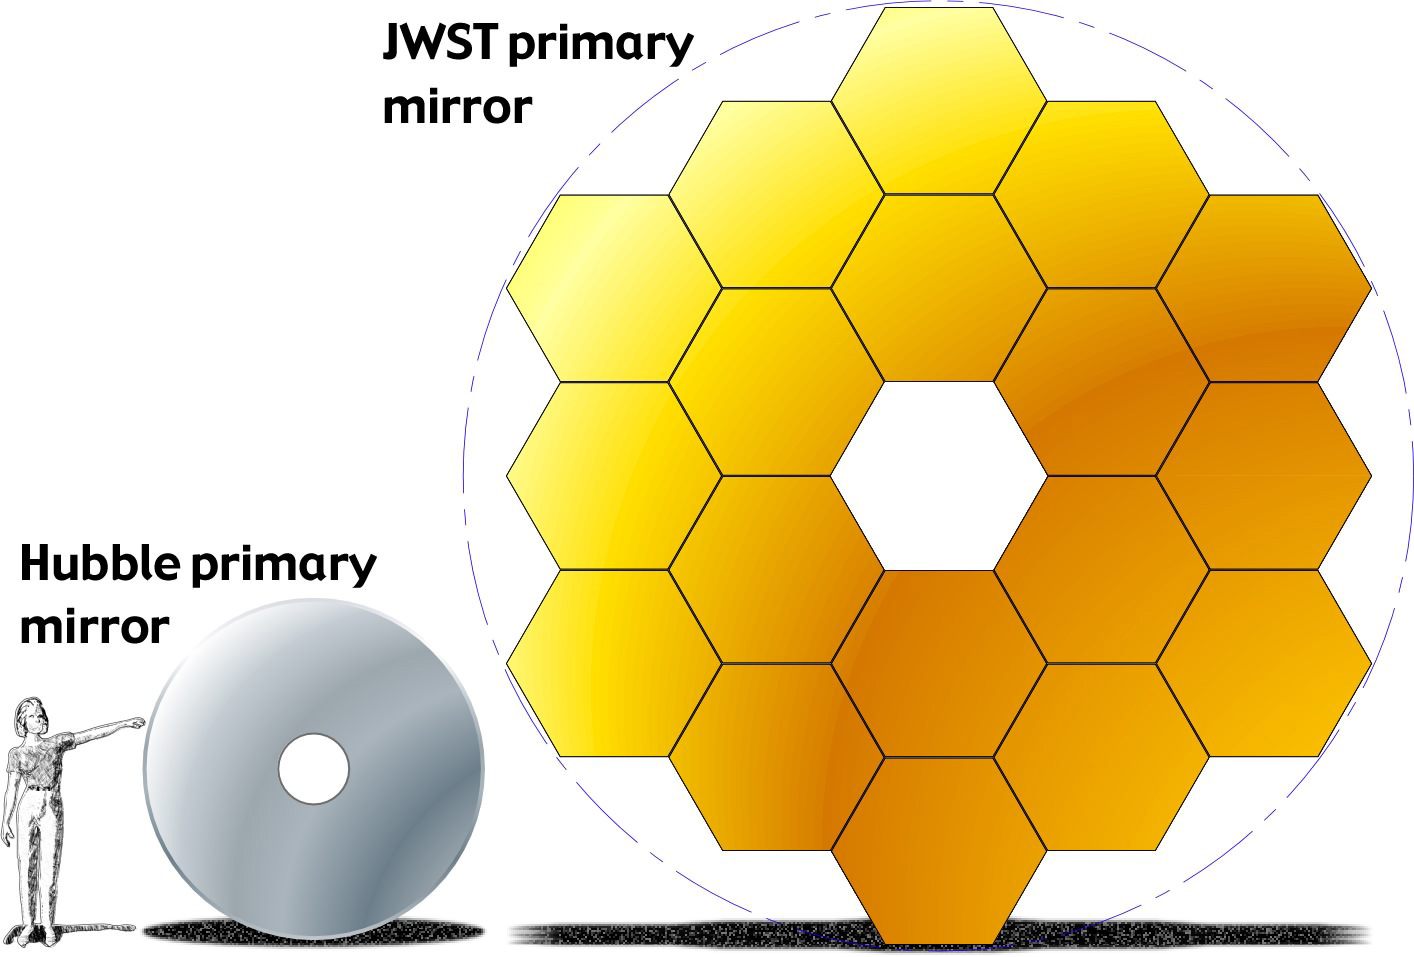 The Commercial Space Blog Hubbell Magnet Controller Wiring Diagrams Hubble Compared To Jwst